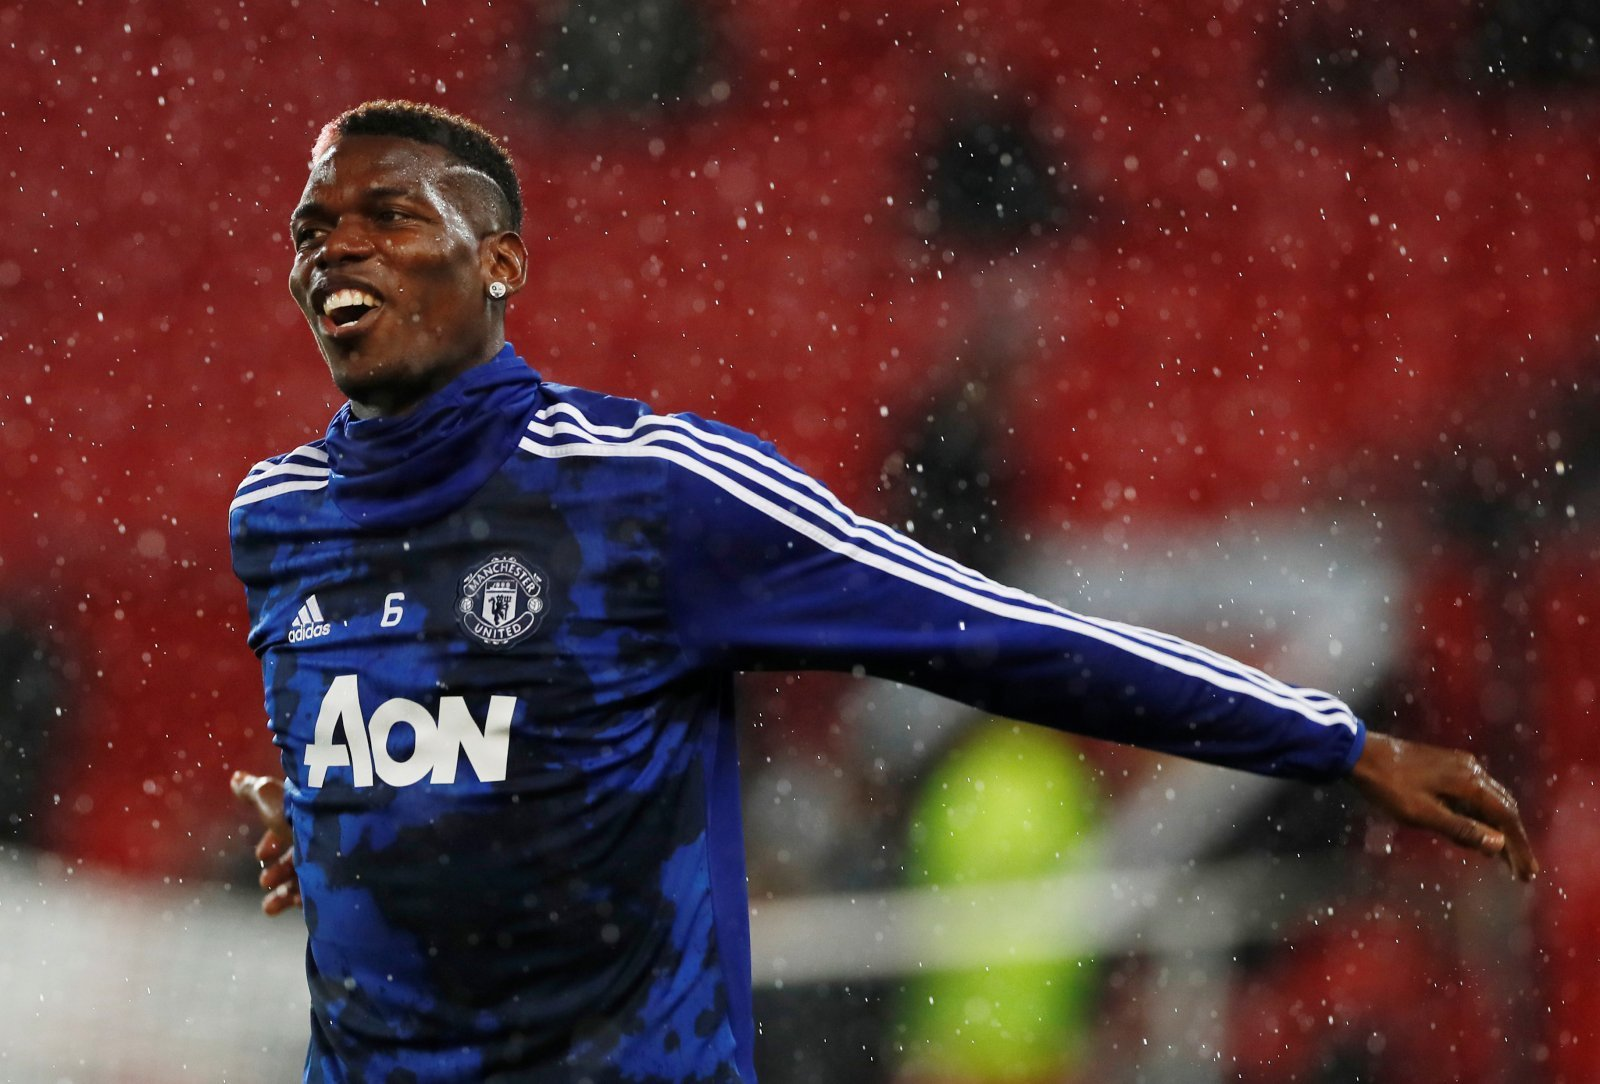 Manchester United: Fans believe number 10 role is the best position for Paul Pogba